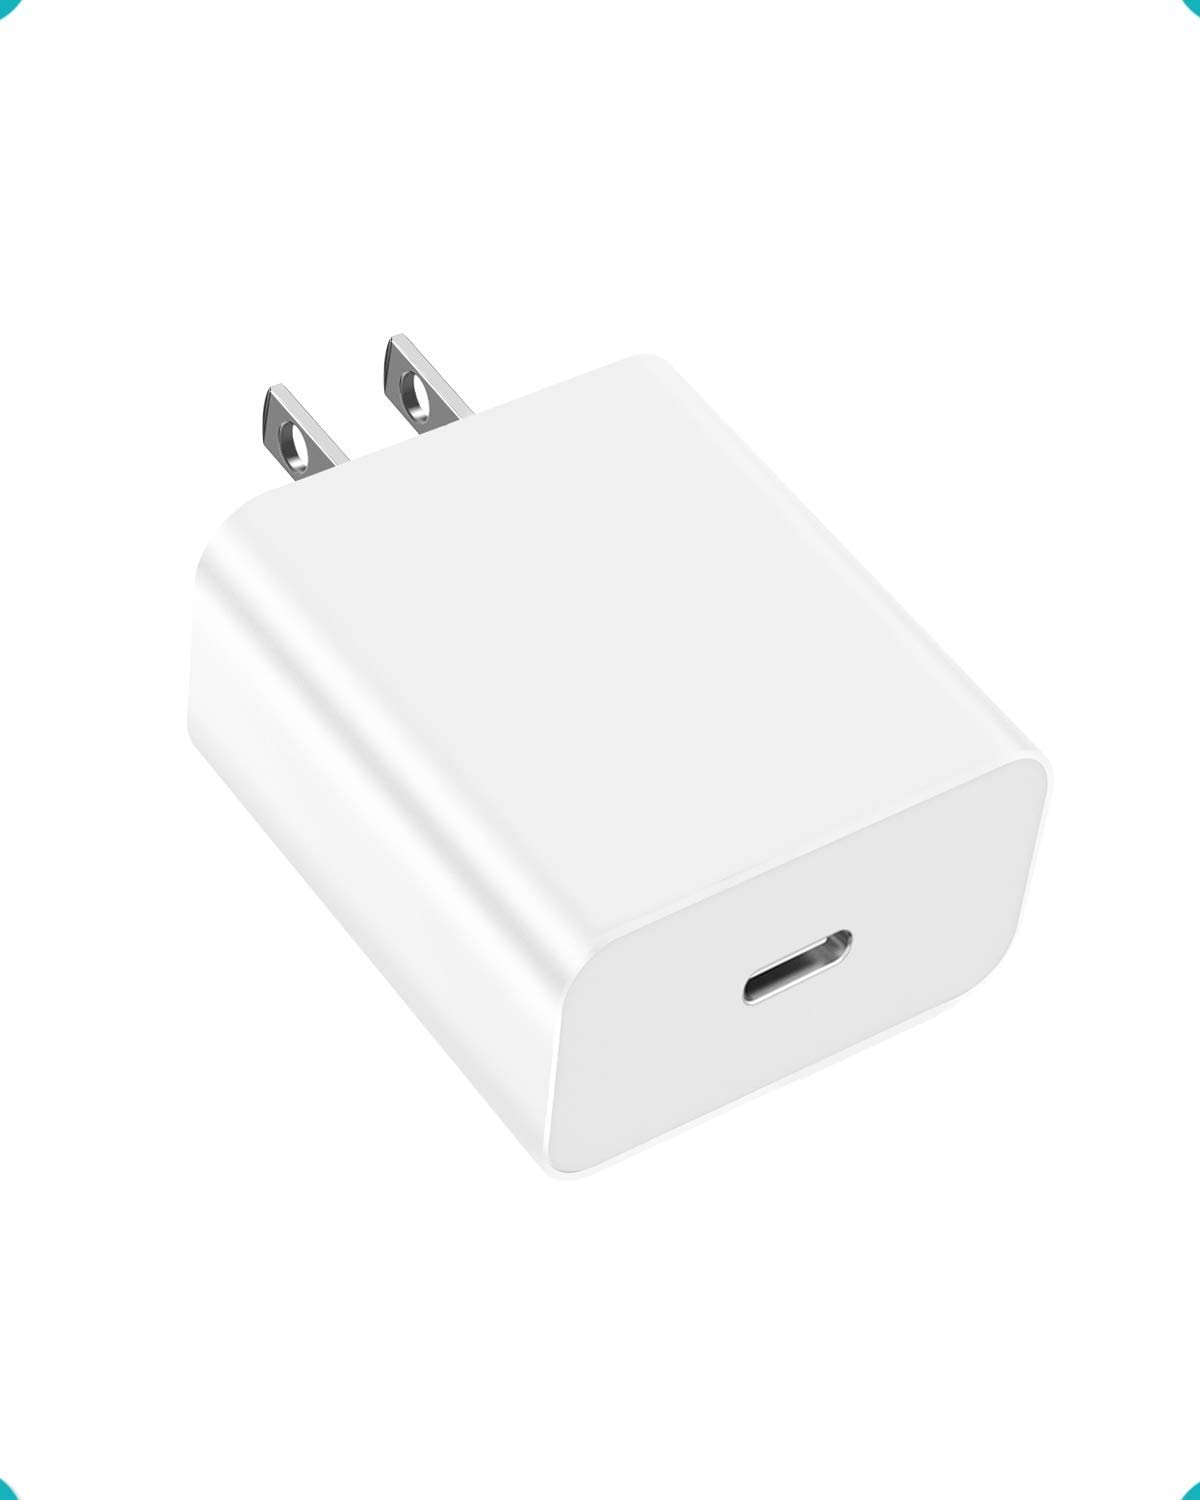 Certified USB-C Wall Adapter